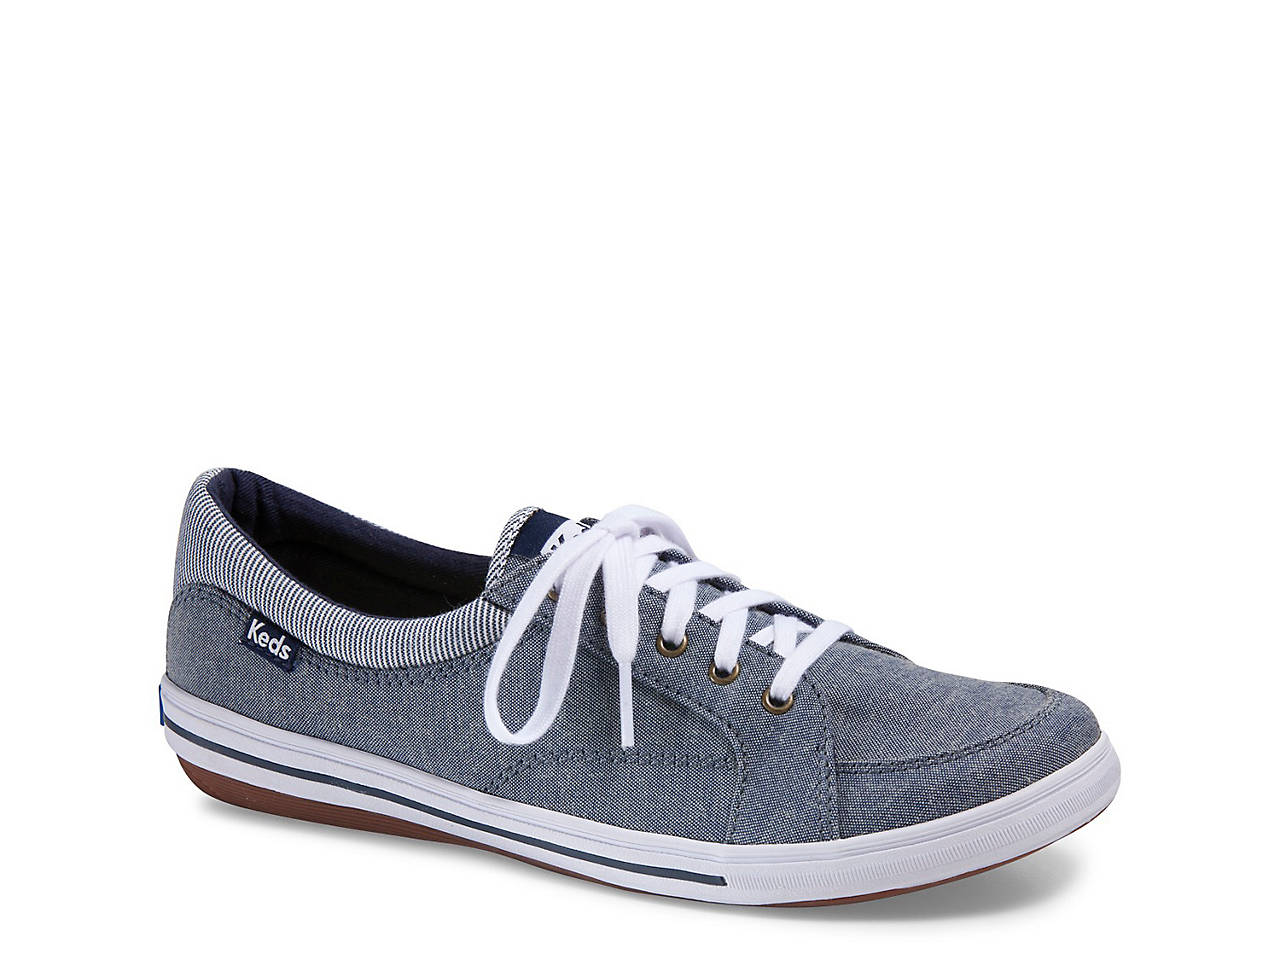 Womens Athletic Shoes keds grey vollie lu5w38g7